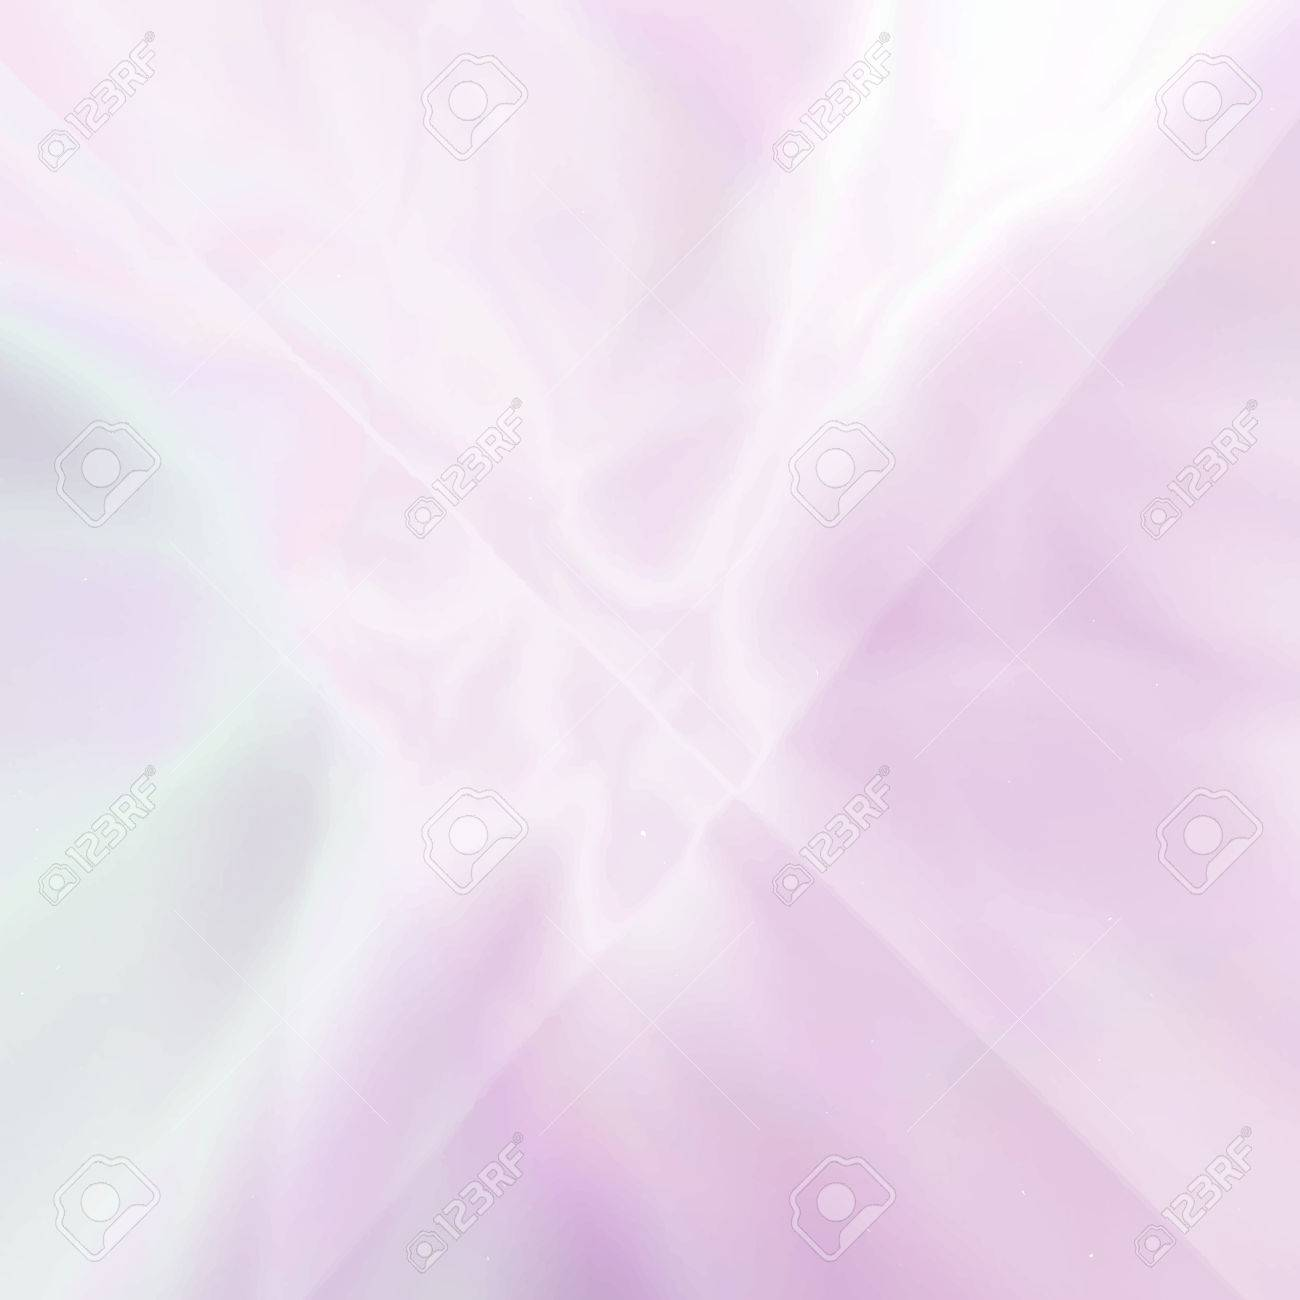 Abstract Blurred Holographic Pink Background Trendy Wallpaper